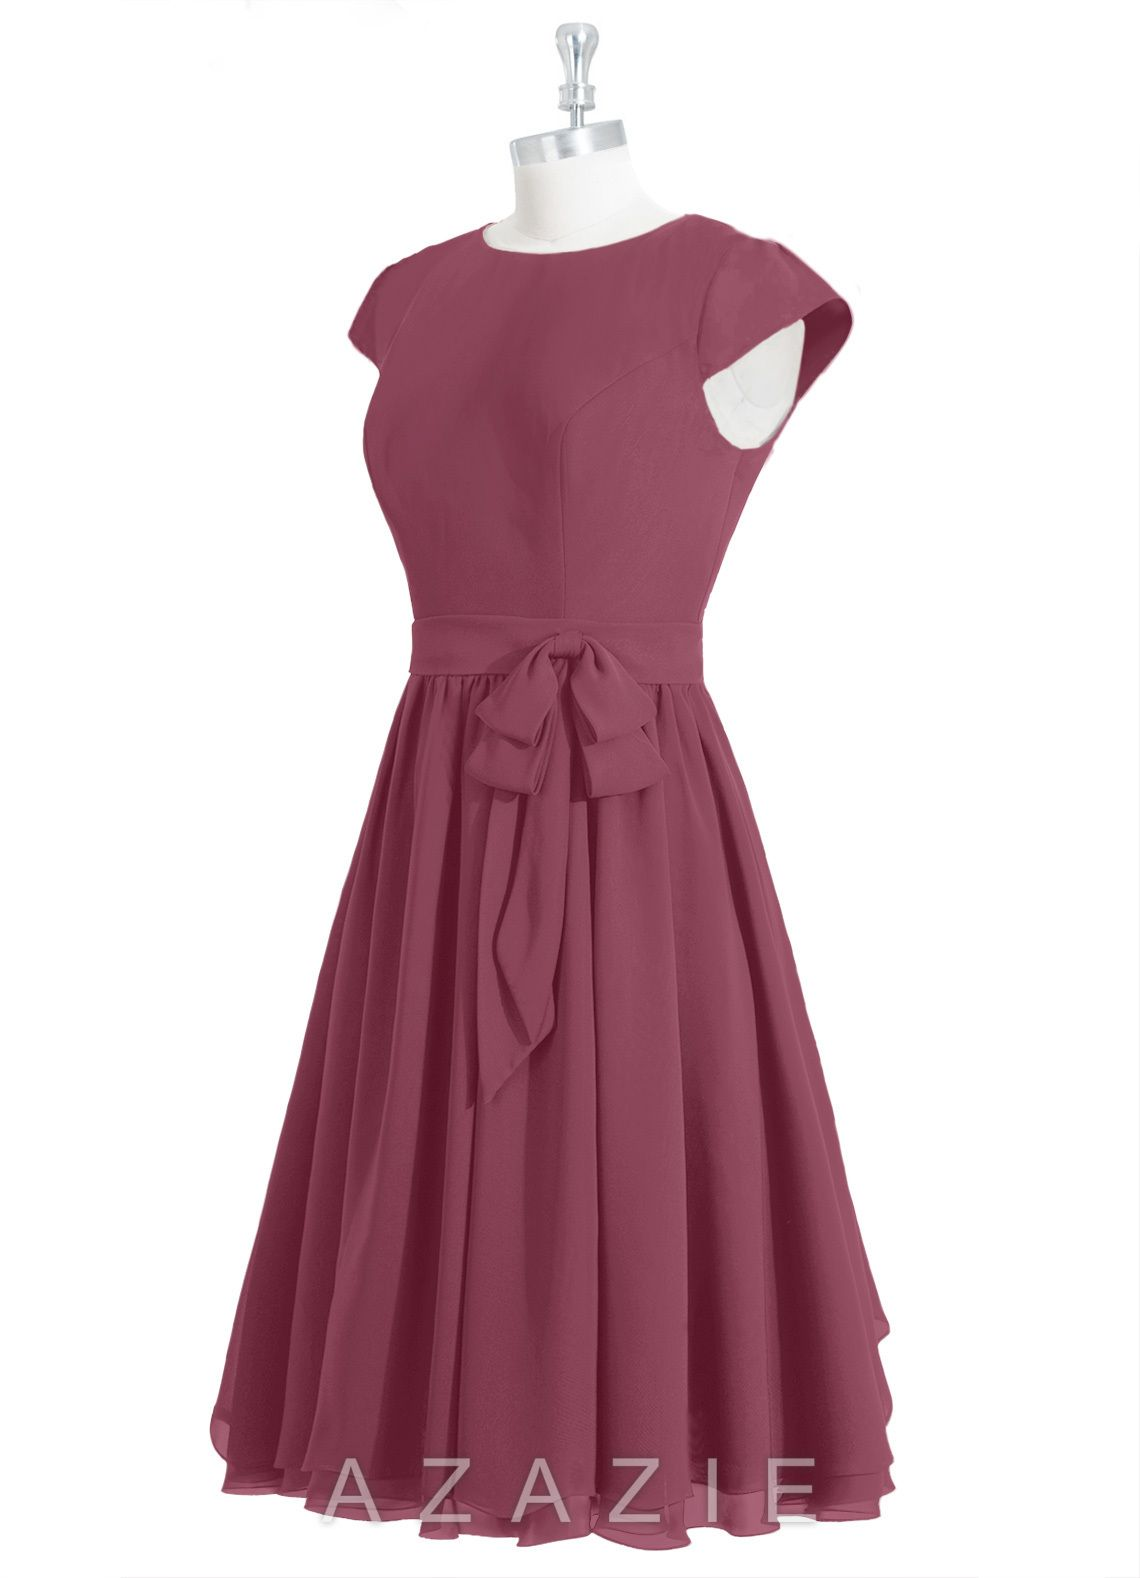 3265a97202 Azazie Ingrid Bridesmaid Dress - Mulberry